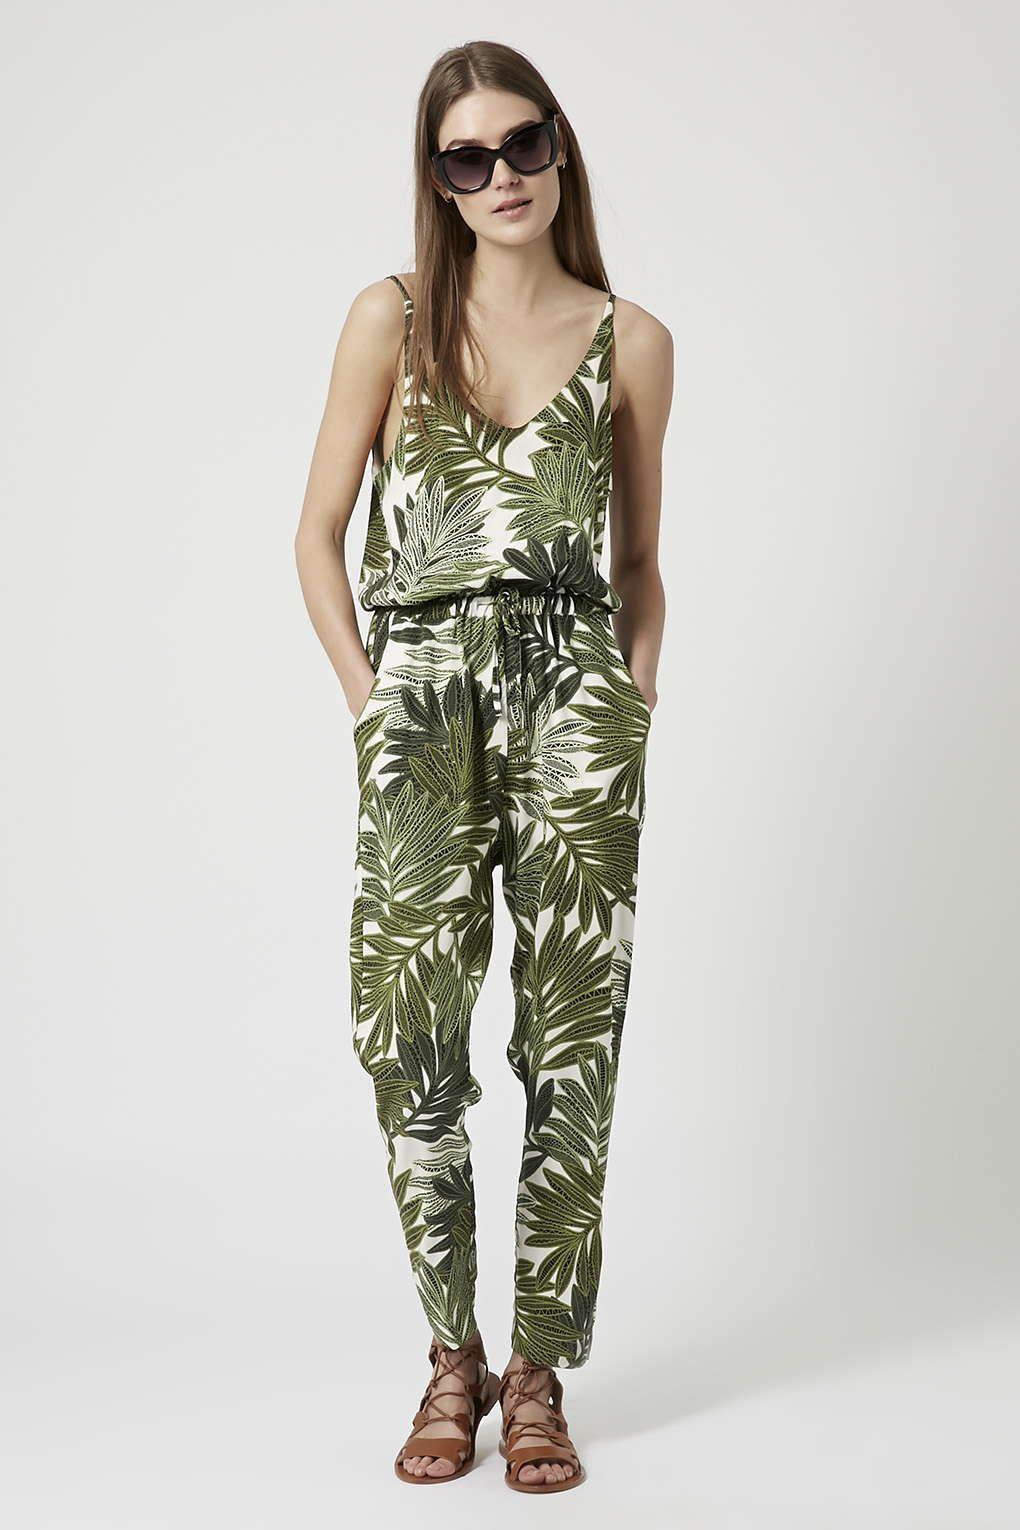 ee55890327f Palm Leaf Print Strappy Jumpsuit - Topshop